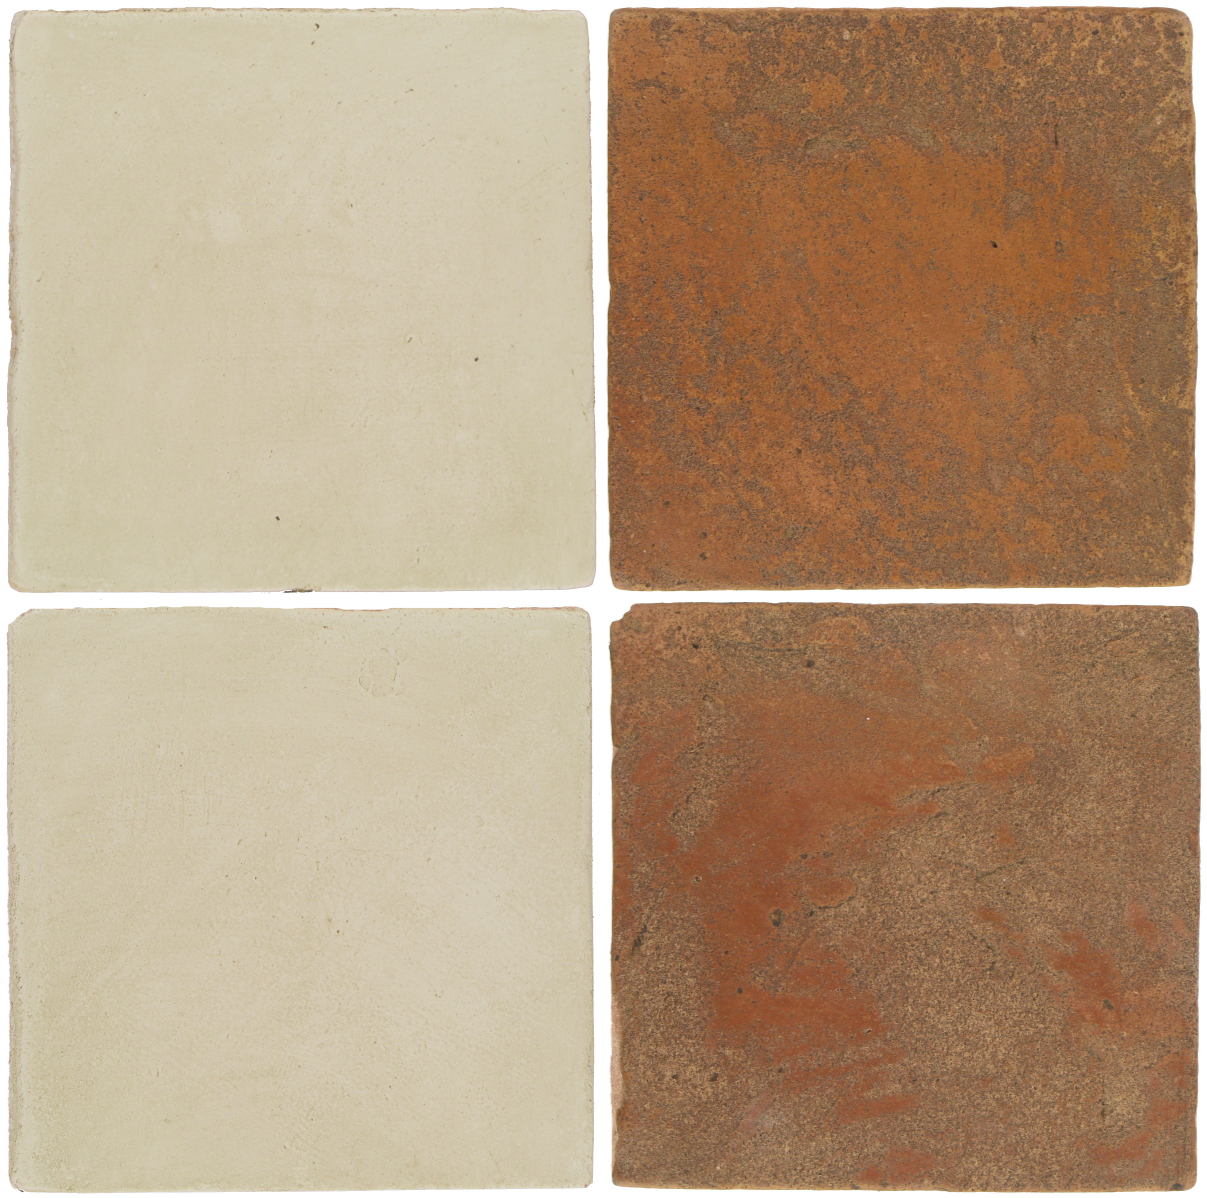 Pedralbes Antique Terracotta  2 Color Combinations  OHS-PGLW Glacier White + VTG-PSTR Traditional